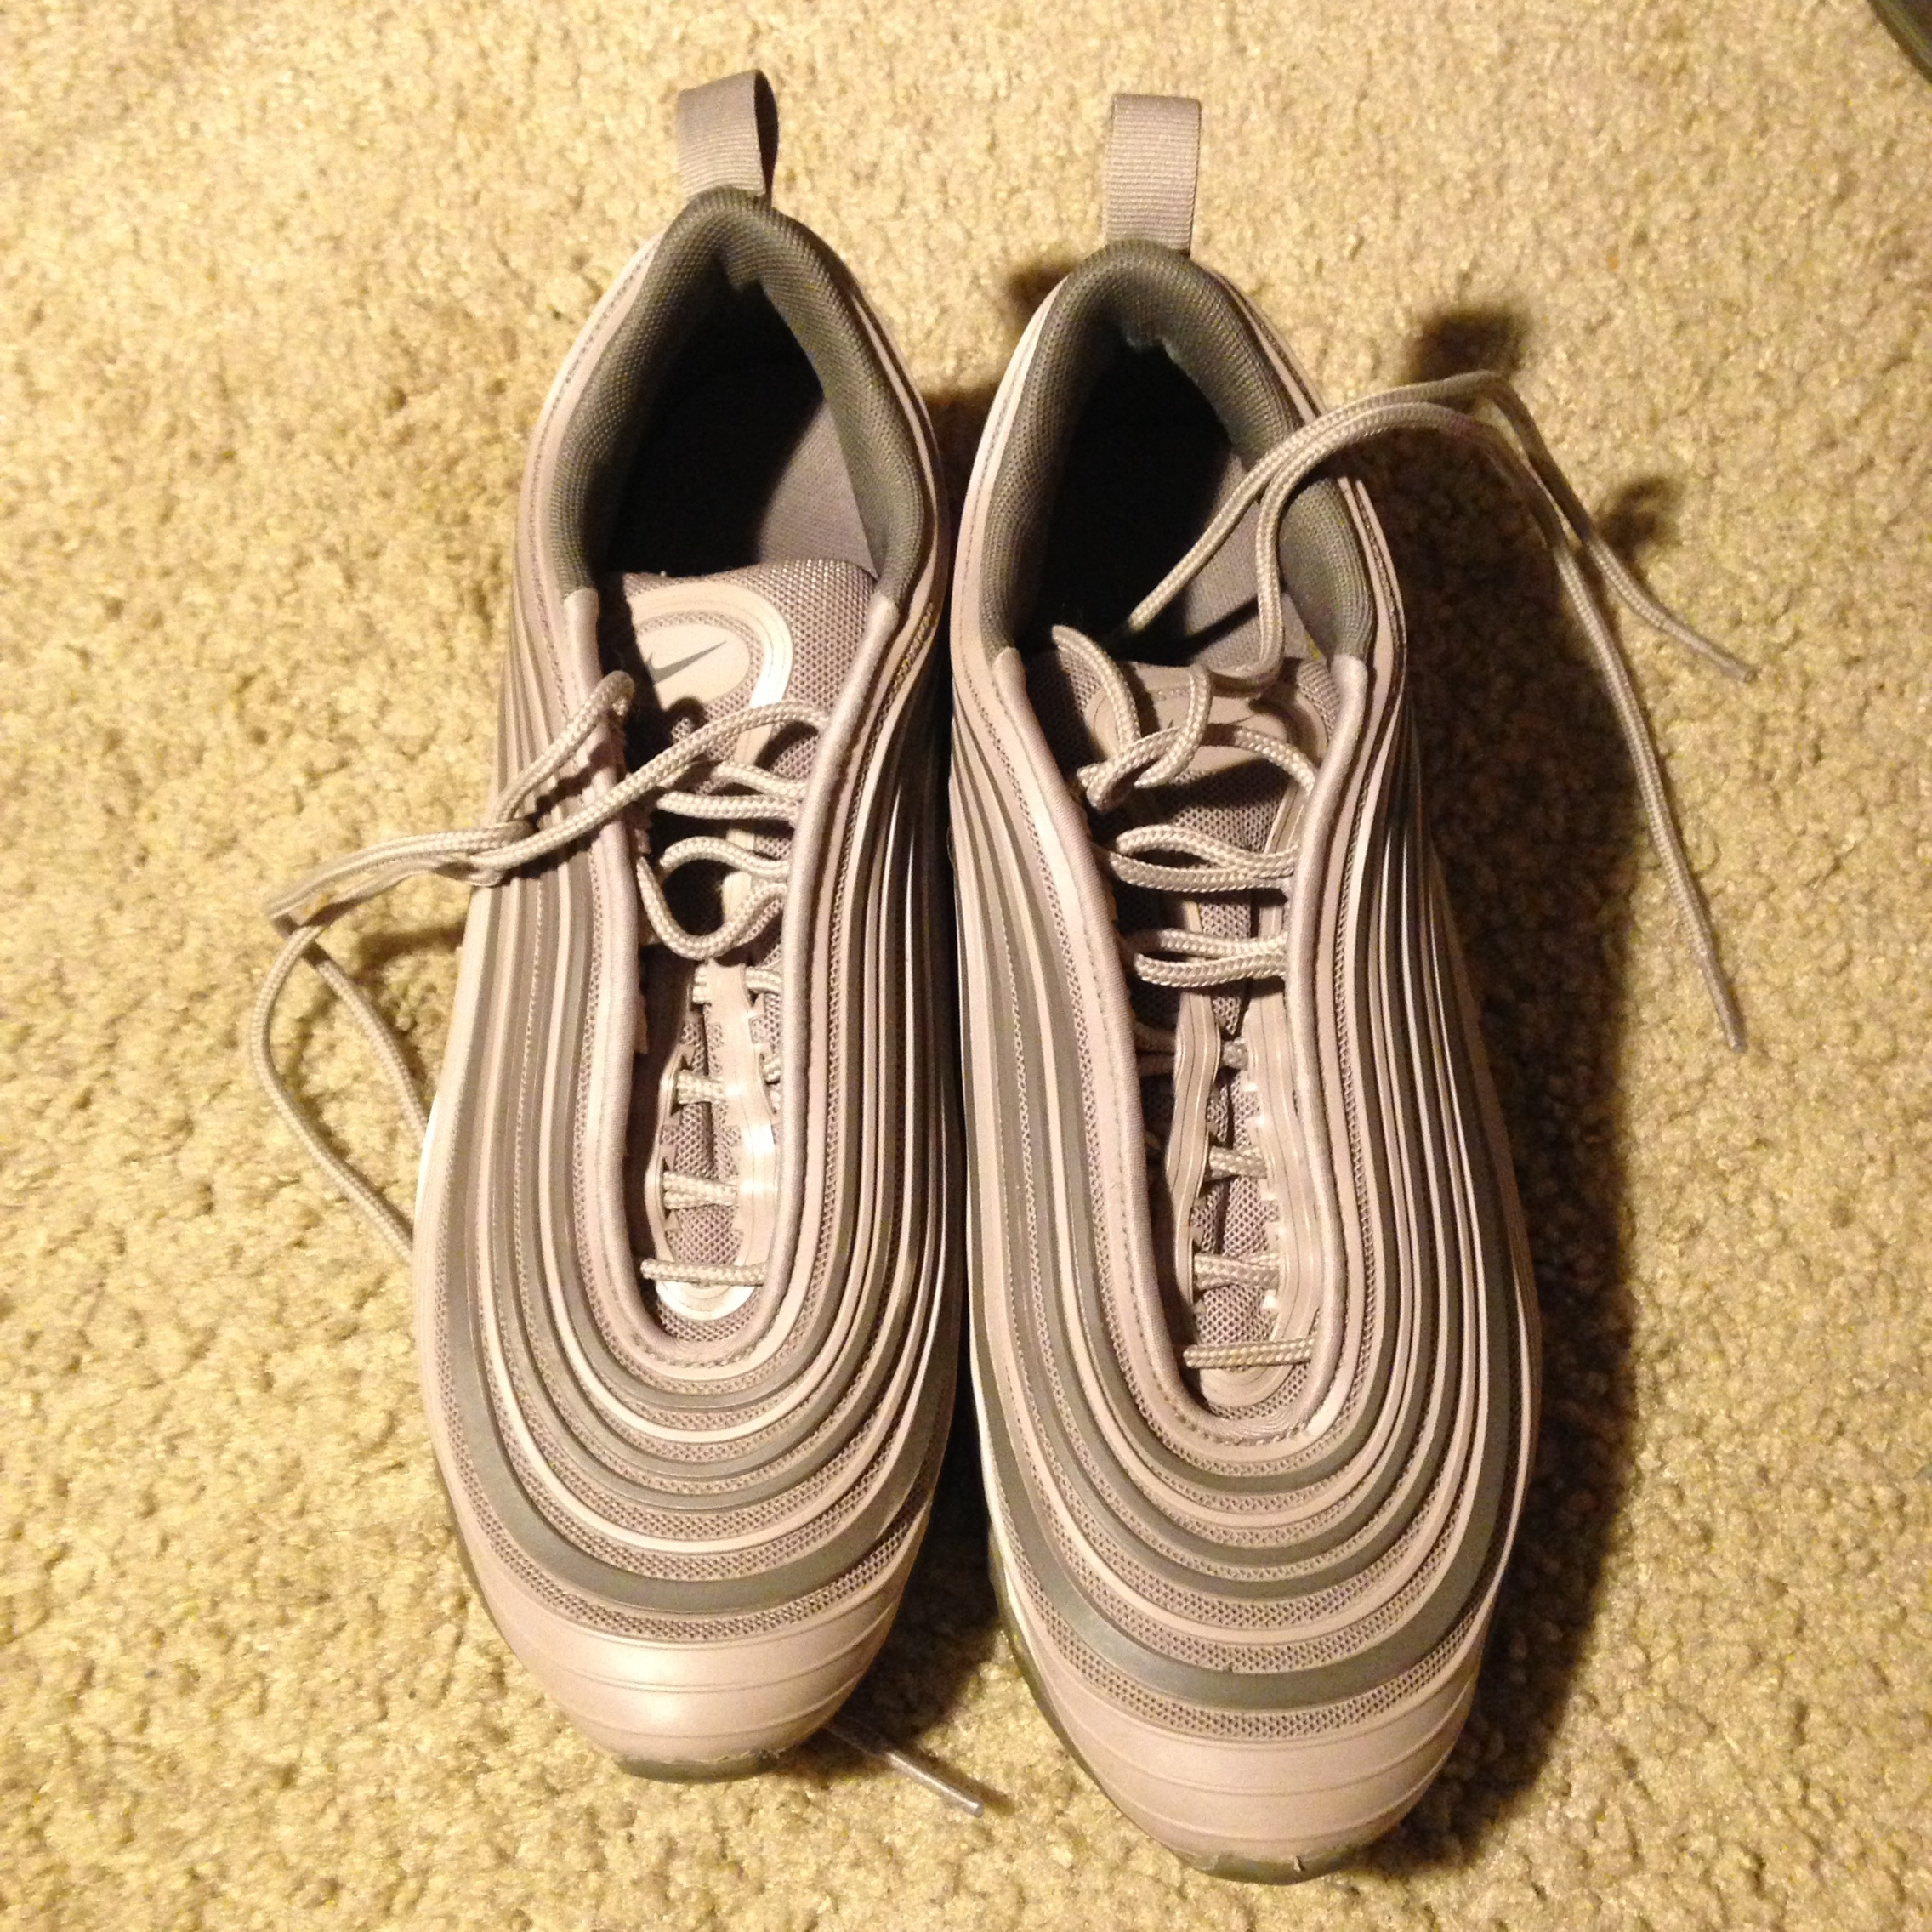 Nike Air Max 97, I call these the